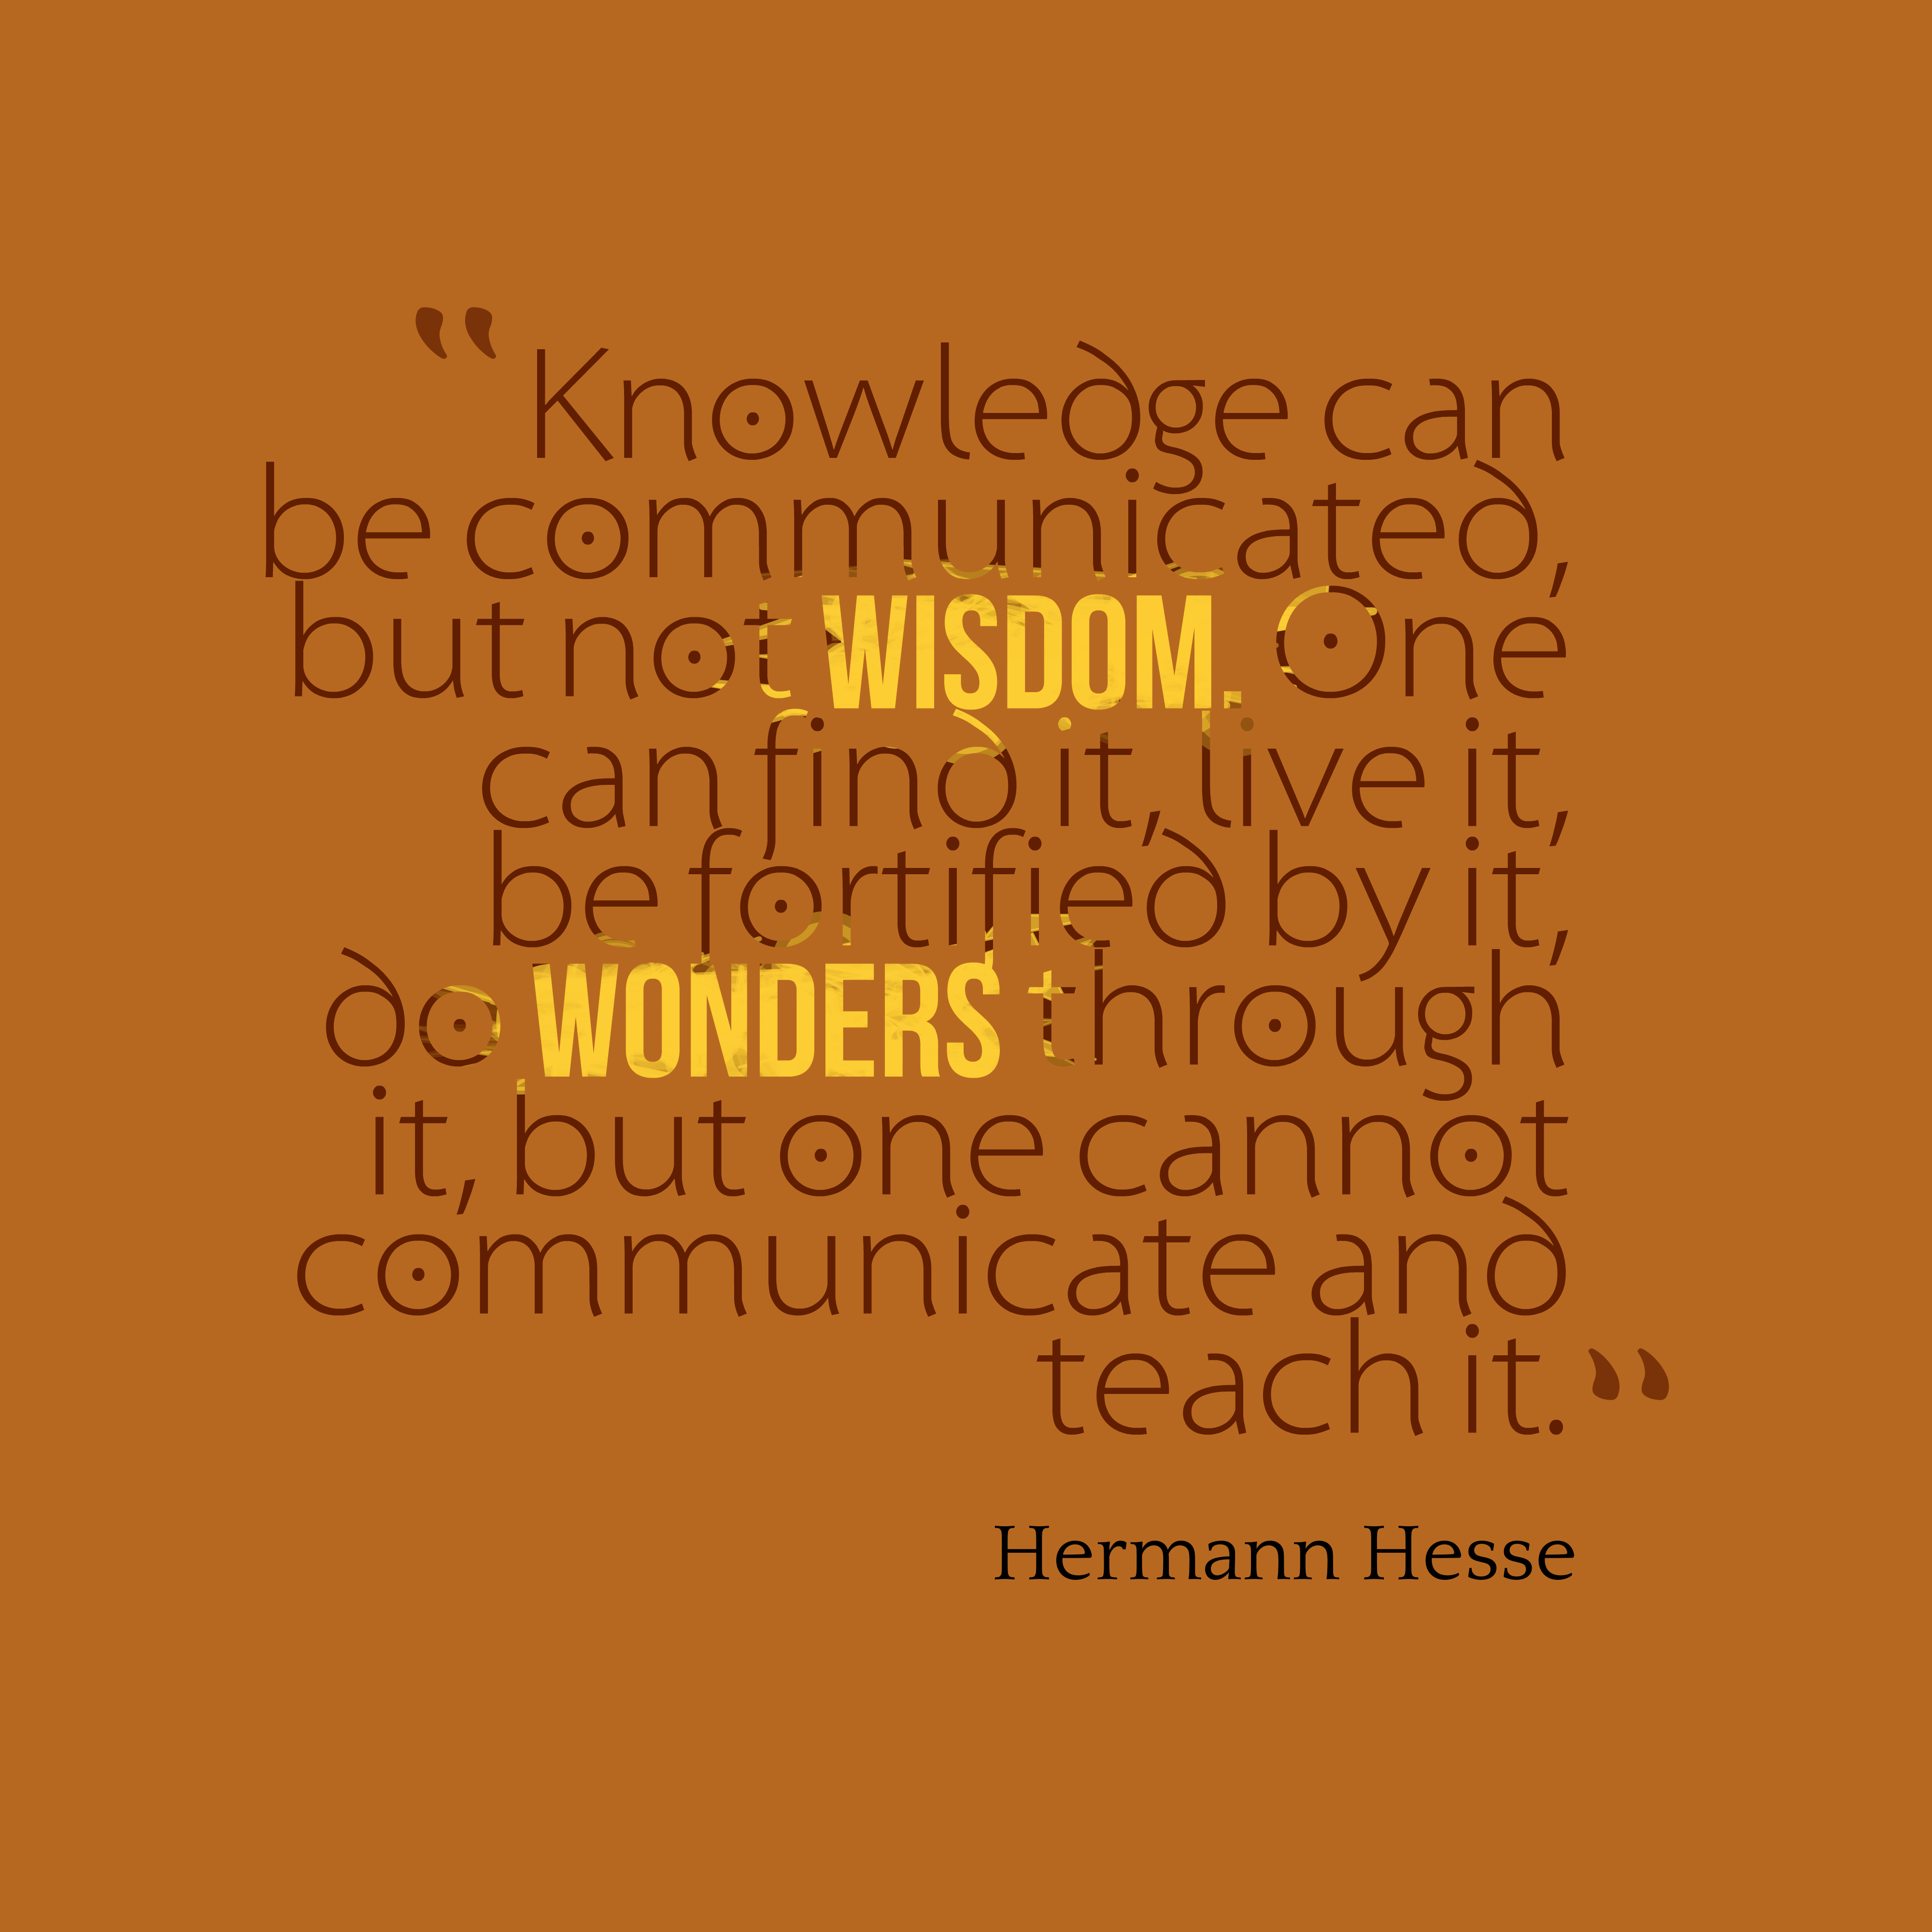 Hermann Hesse Quote About Knowledge